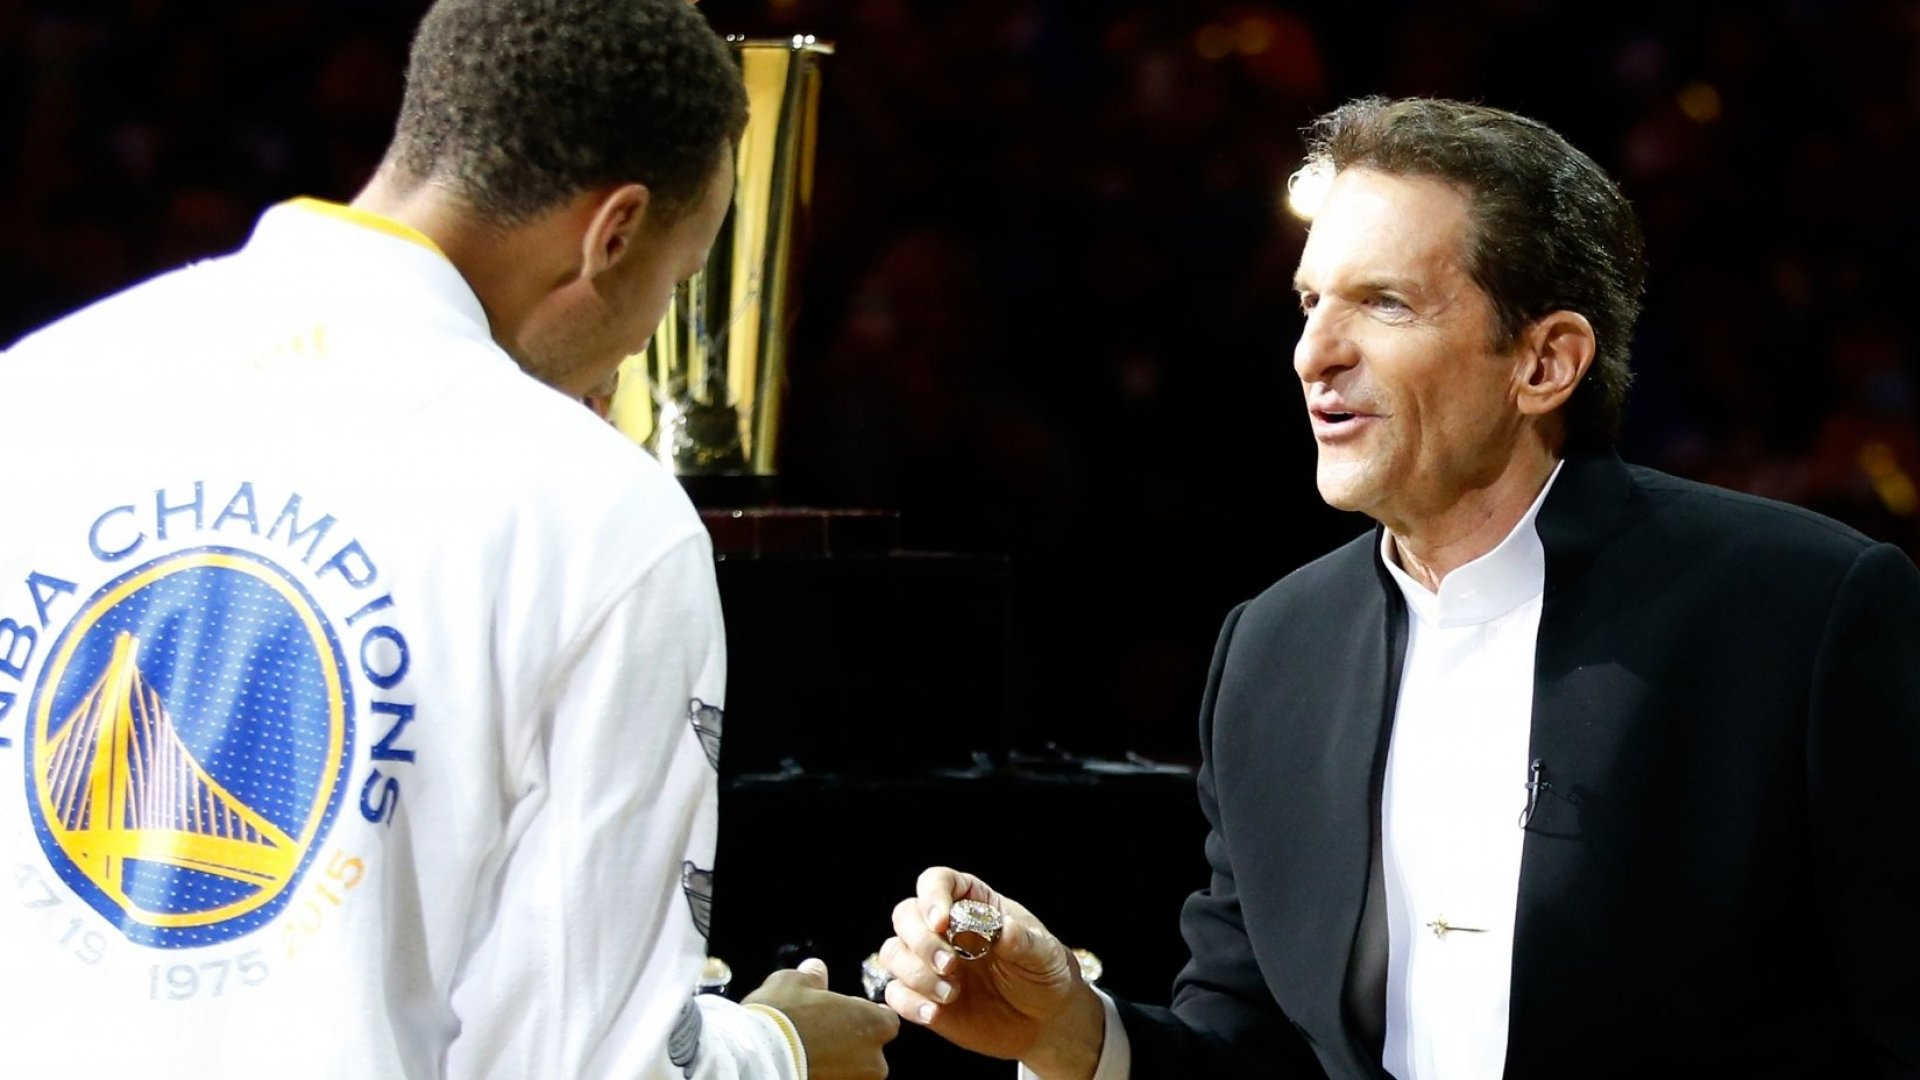 Golden State Warriors owner Peter Guber hands Stephen Curry #30 of the Golden State Warriors his championship ring